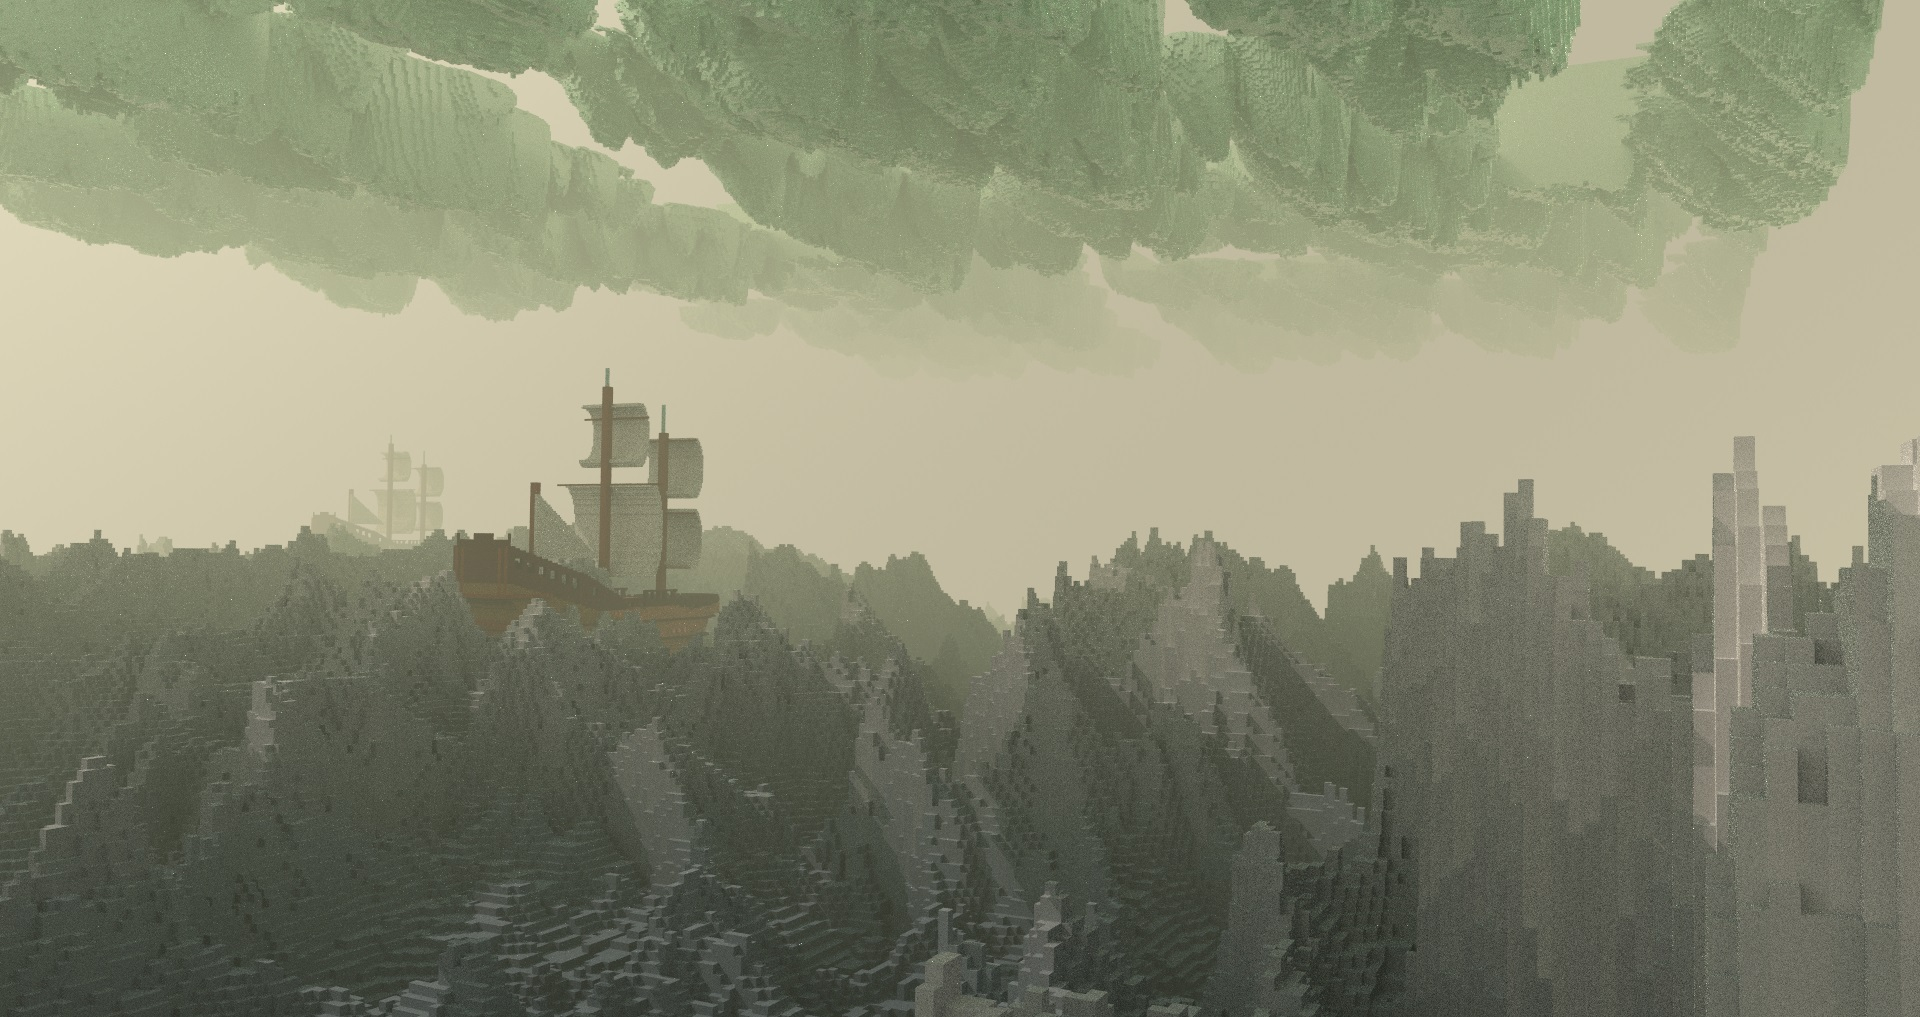 Sea Galleon in a Storm, voxel art created and rendered in Avoyd by Rebecca Michalak